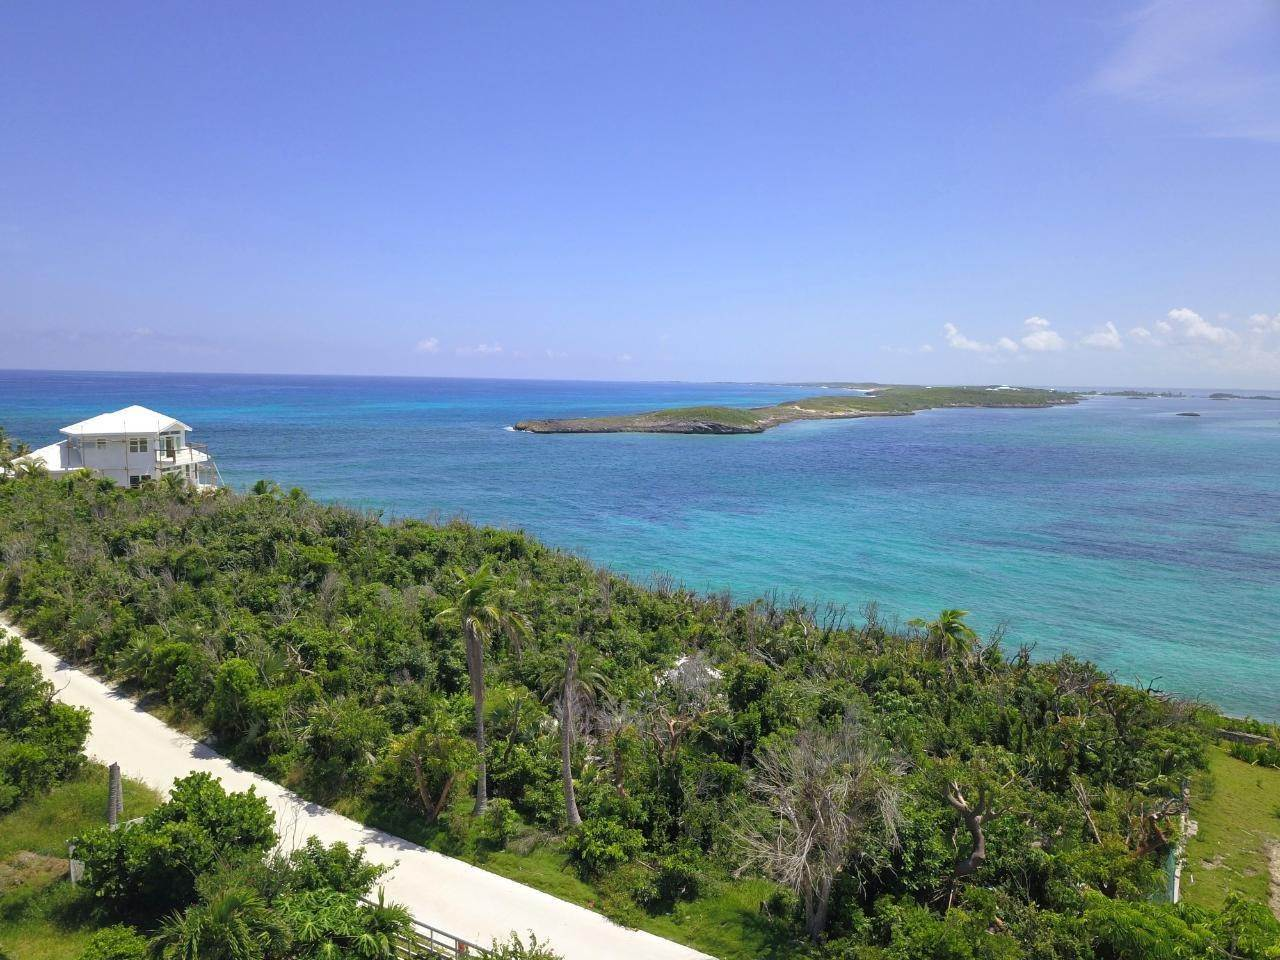 Lots / Acreage for Sale at Elbow Cay, Abaco Bahamas